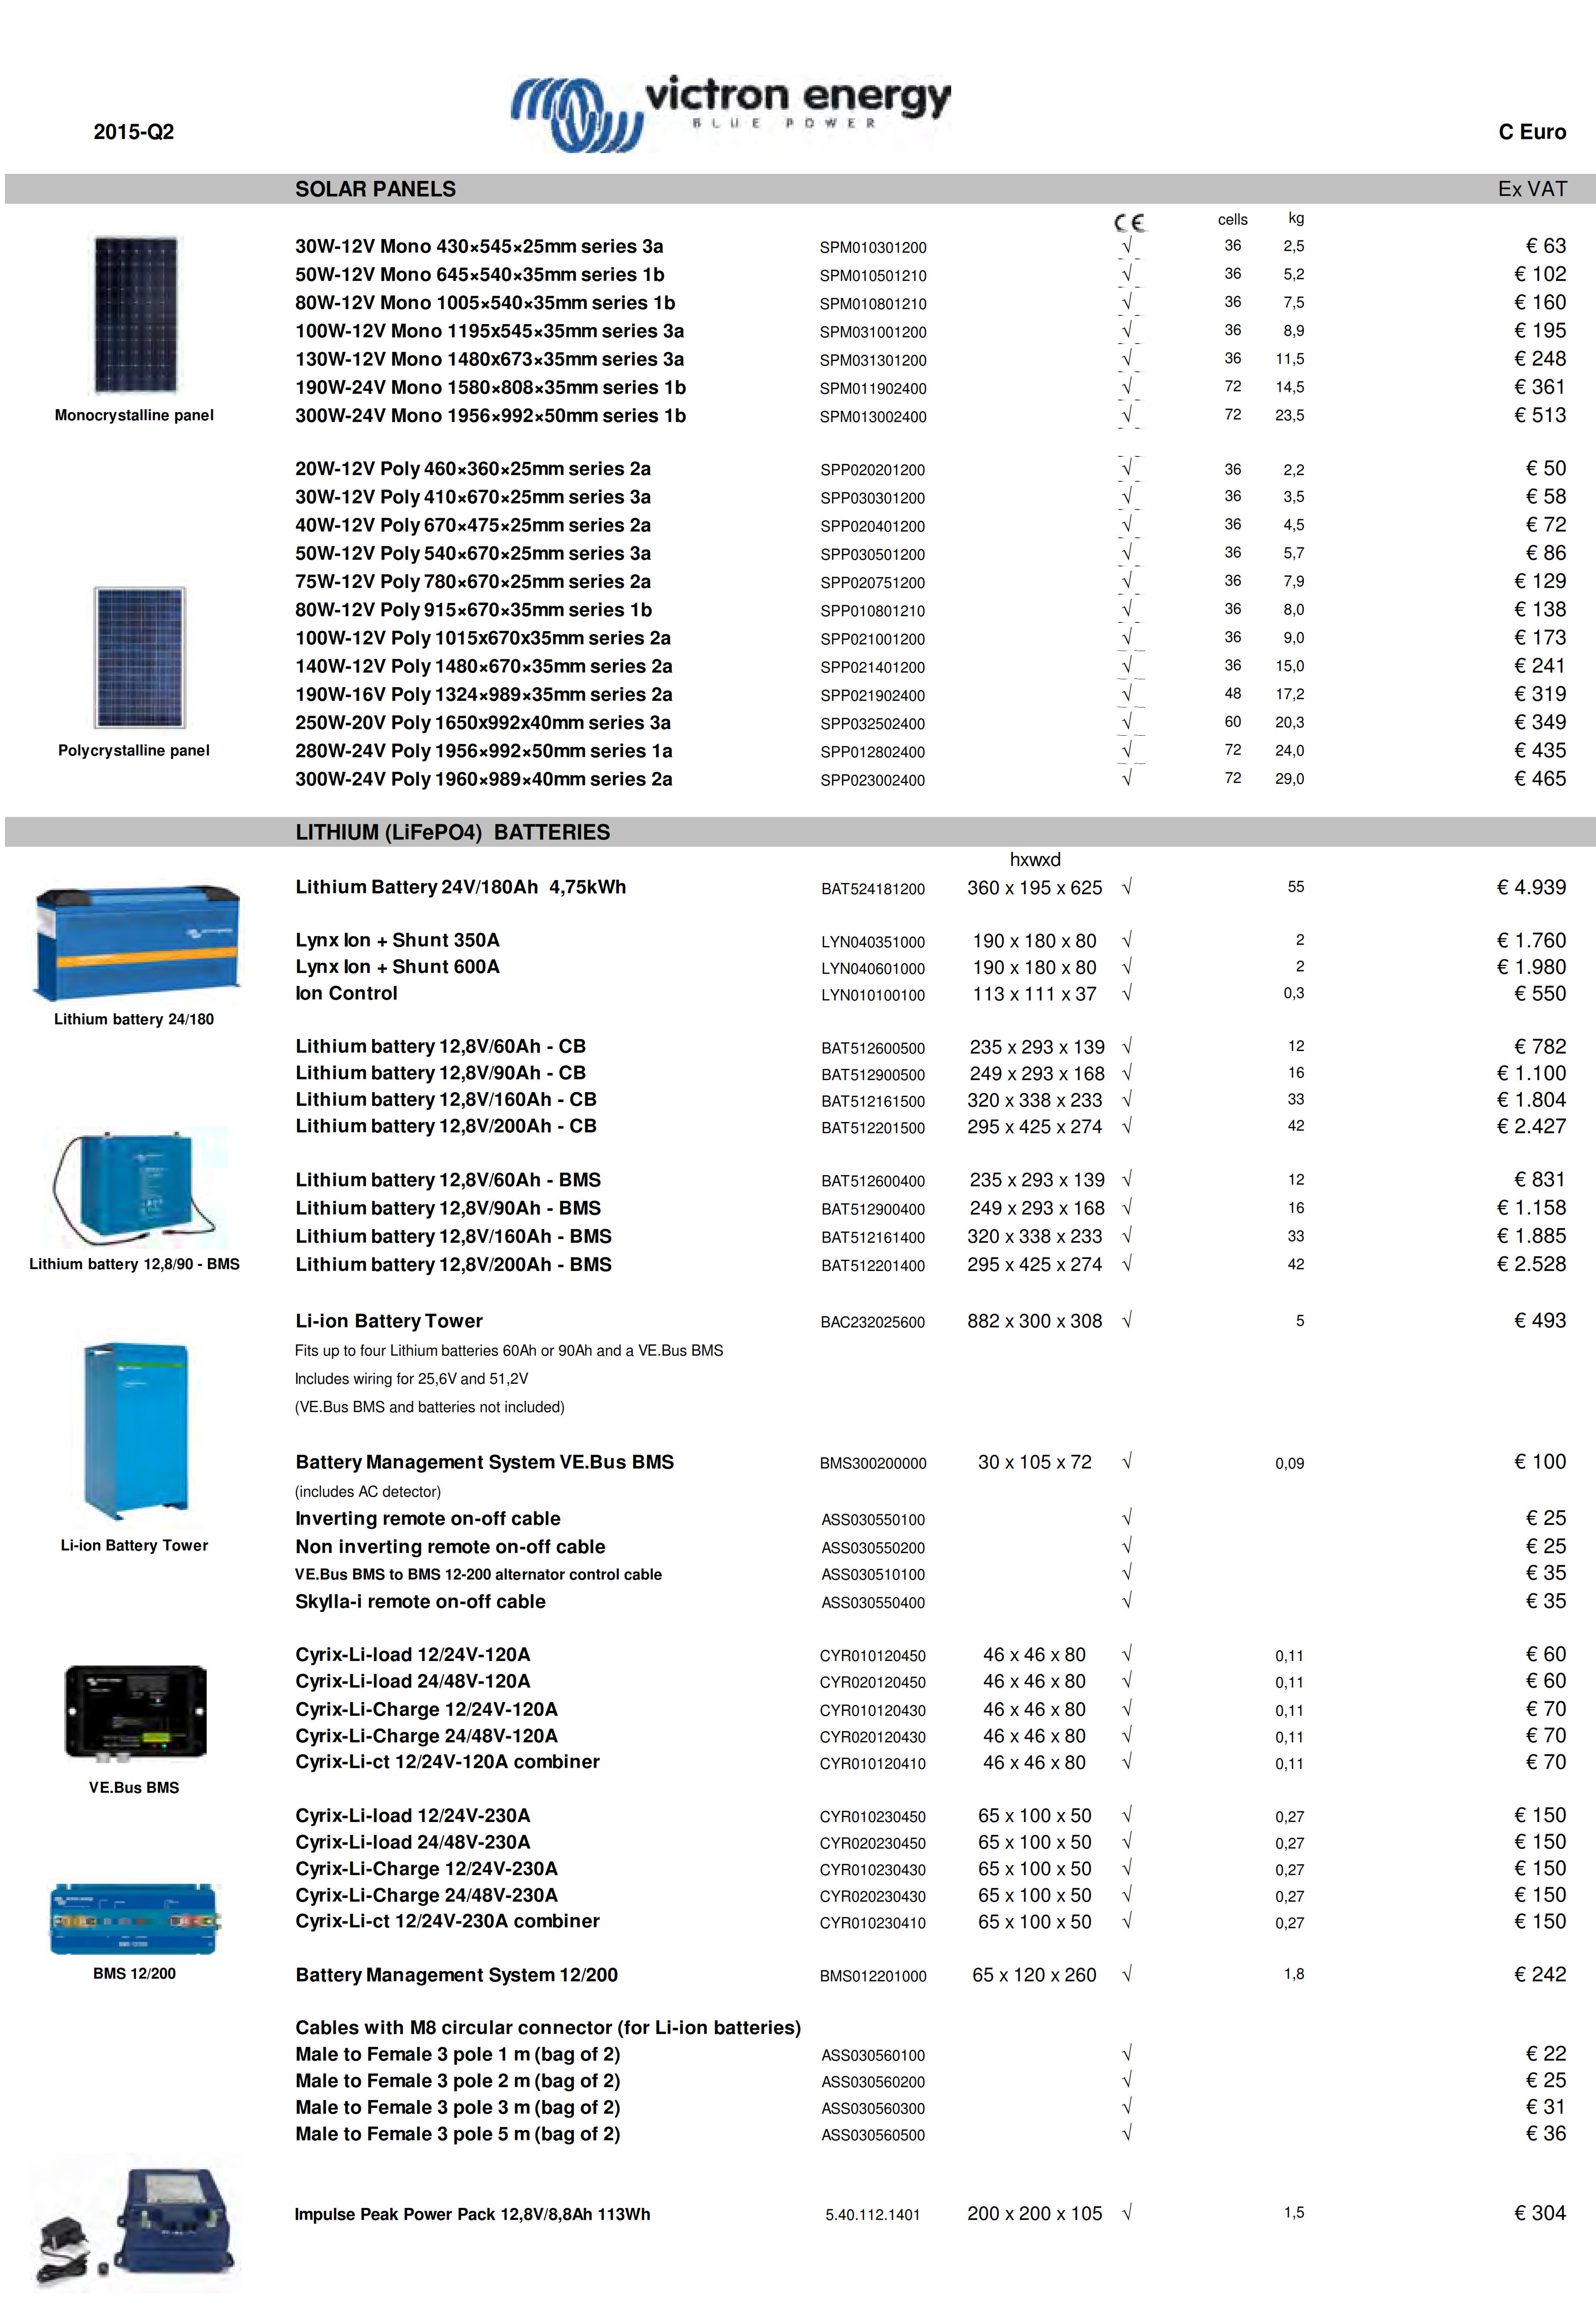 SOLAR PANELS Ex VAT 30W-12V Mono 430×545×25mm series 3a SPM010301200 √ 2,5 50W-12V Mono 645×540×35mm series 1b SPM010501210 √ 5,2 80W-12V Mono 1005×540×35mm series 1b SPM010801210 √ 7,5 100W-12V Mono 1195x545×35mm series 3a SPM031001200 √ 8,9 130W-12V Mono 1480x673×35mm series 3a SPM031301200 √ 11,5 190W-24V Mono 1580×808×35mm series 1b SPM011902400 √ 14,5 300W-24V Mono 1956×992×50mm series 1b SPM013002400 √ 23,5 kg 20W-12V Poly 460×360×25mm series 2a SPP020201200 √ 2,2 € 50 30W-12V Poly 410×670×25mm series 3a SPP030301200 √ 3,5 40W-12V Poly 670×475×25mm series 2a SPP020401200 √ 4,5 50W-12V Poly 540×670×25mm series 3a SPP030501200 √ 5,7 75W-12V Poly 780×670×25mm series 2a SPP020751200 √ 7,9 80W-12V Poly 915×670×35mm series 1b SPP010801210 √ 8,0 100W-12V Poly 1015x670x35mm series 2a SPP021001200 √ 9,0 140W-12V Poly 1480×670×35mm series 2a SPP021401200 √ 15,0 190W-16V Poly 1324×989×35mm series 2a SPP021902400 √ 17,2 250W-20V Poly 1650x992x40mm series 3a SPP032502400 √ 20,3 280W-24V Poly 1956×992×50mm series 1a SPP012802400 √ 24,0 300W-24V Poly 1960×989×40mm series 2a SPP023002400 √ 29,0 LITHIUM (LiFePO4)  BATTERIES hxwxd Lithium Battery 24V/180Ah  4,75kWh BAT524181200 360 x 195 x 625 √ Lynx Ion + Shunt 350A LYN040351000 190 x 180 x 80 √ Lynx Ion + Shunt 600A LYN040601000 190 x 180 x 80 √ Ion Control LYN010100100 113 x 111 x 37 √ Lithium battery 12,8V/60Ah - CB BAT512600500  235 x 293 x 139 √ Lithium battery 12,8V/90Ah - CB BAT512900500  249 x 293 x 168 √ Lithium battery 12,8V/160Ah - CB BAT512161500 320 x 338 x 233 √ Lithium battery 12,8V/200Ah - CB BAT512201500 295 x 425 x 274 √ Lithium battery 12,8V/60Ah - BMS BAT512600400  235 x 293 x 139 √ 12 Lithium battery 12,8V/90Ah - BMS BAT512900400  249 x 293 x 168 √ 16 Lithium battery 12,8V/160Ah - BMS BAT512161400 320 x 338 x 233 √ 33 Lithium battery 12,8V/200Ah - BMS BAT512201400 295 x 425 x 274 √ 42 Li-ion Battery Tower BAC232025600 882 x 300 x 308 √ 5 Fits up to four Lithium batteries 60Ah or 90Ah and a VE.Bus BMS Inclu